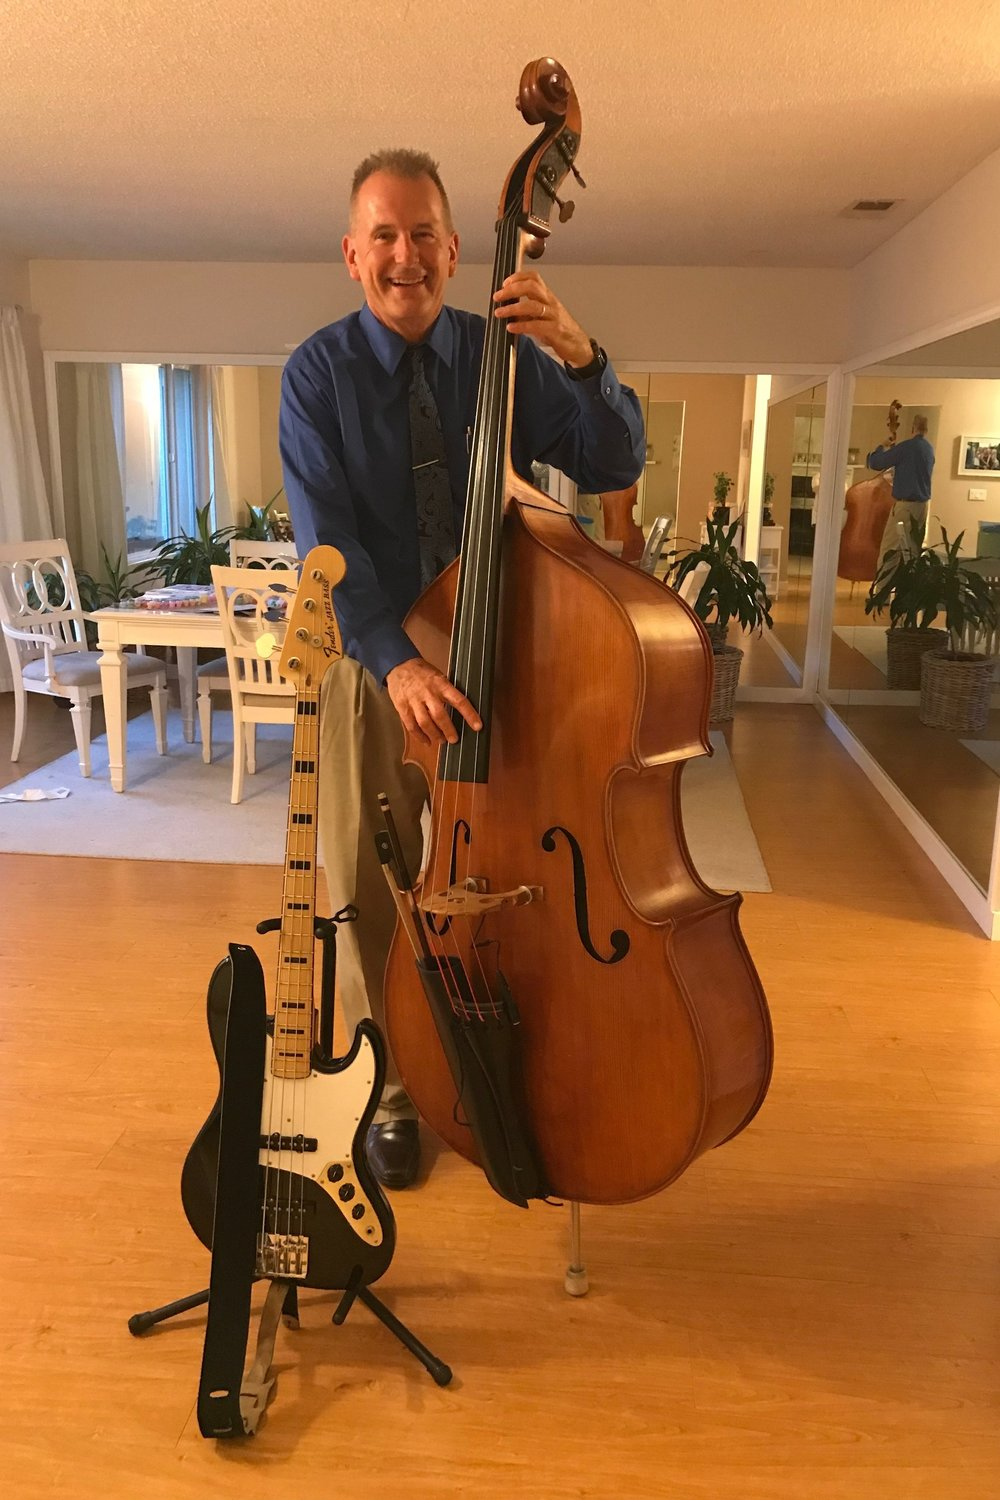 Roman Sirwinski - Upright bass and electric bass